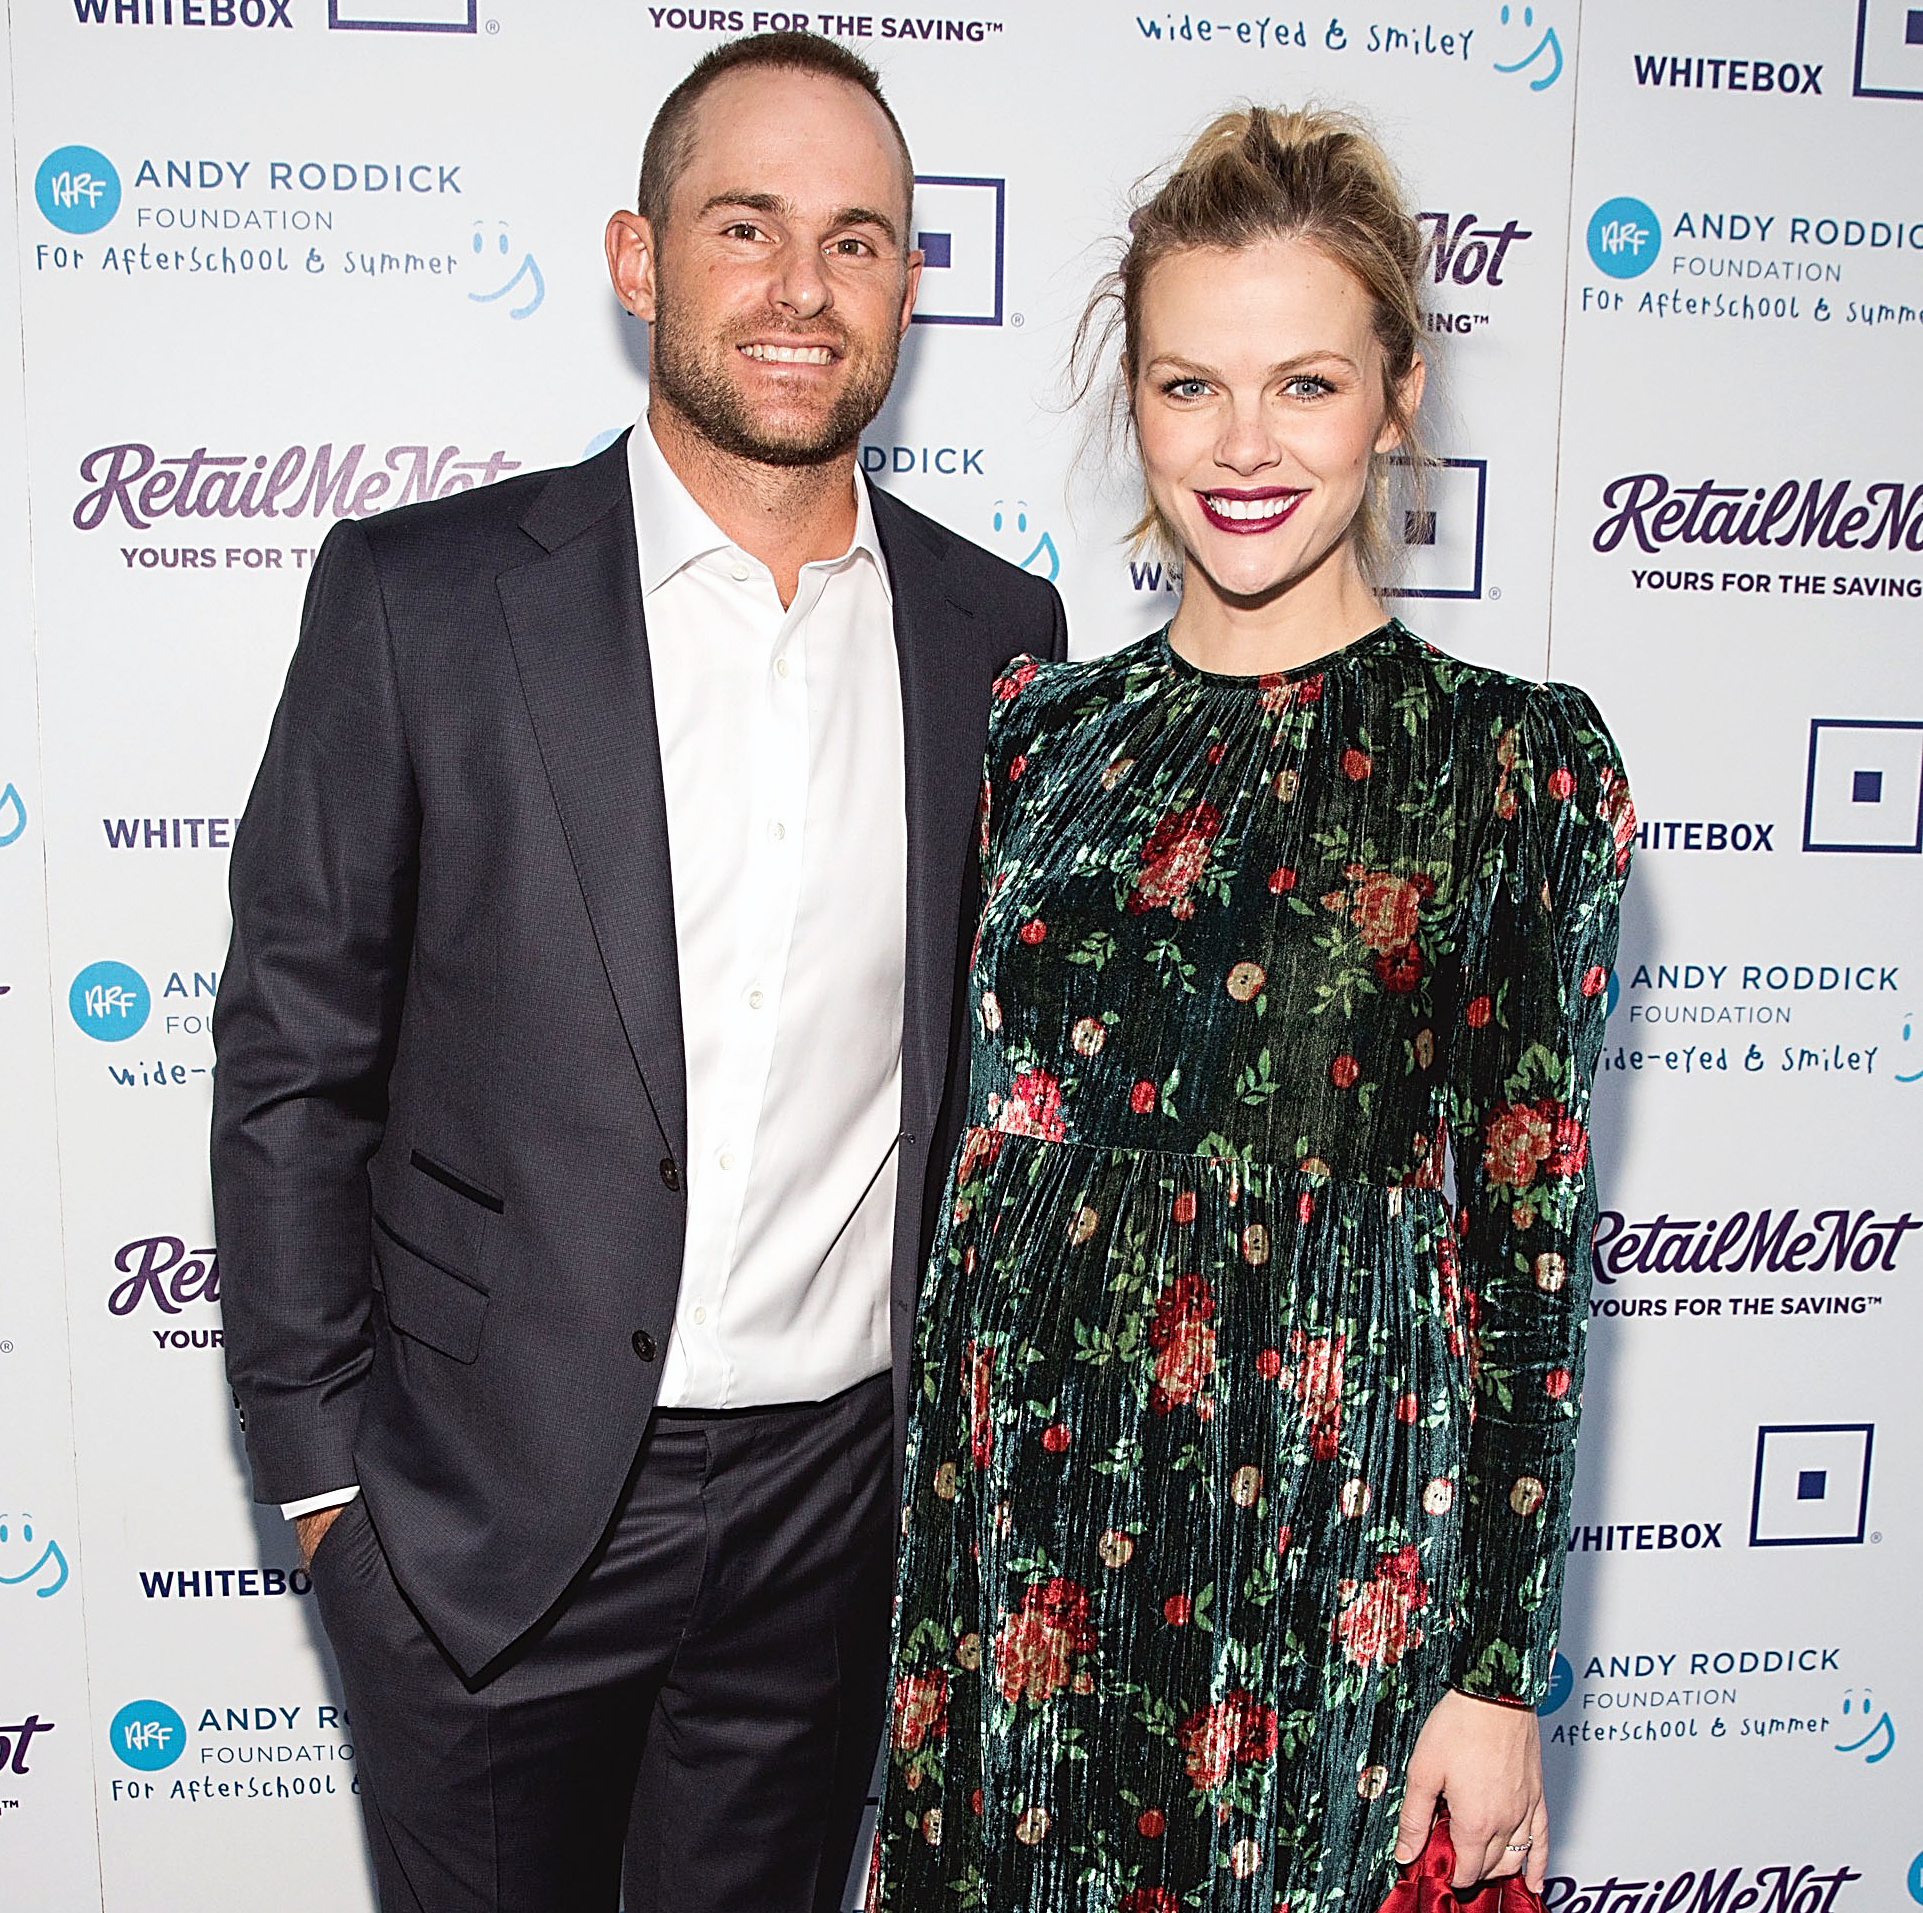 Brooklyn Decker Andy Roddick Diapers Parenting - Andy Roddick and Brooklyn Decker attend the 12th Annual Andy Roddick Foundation Gala at ACL Live on October 30, 2017 in Austin, Texas.